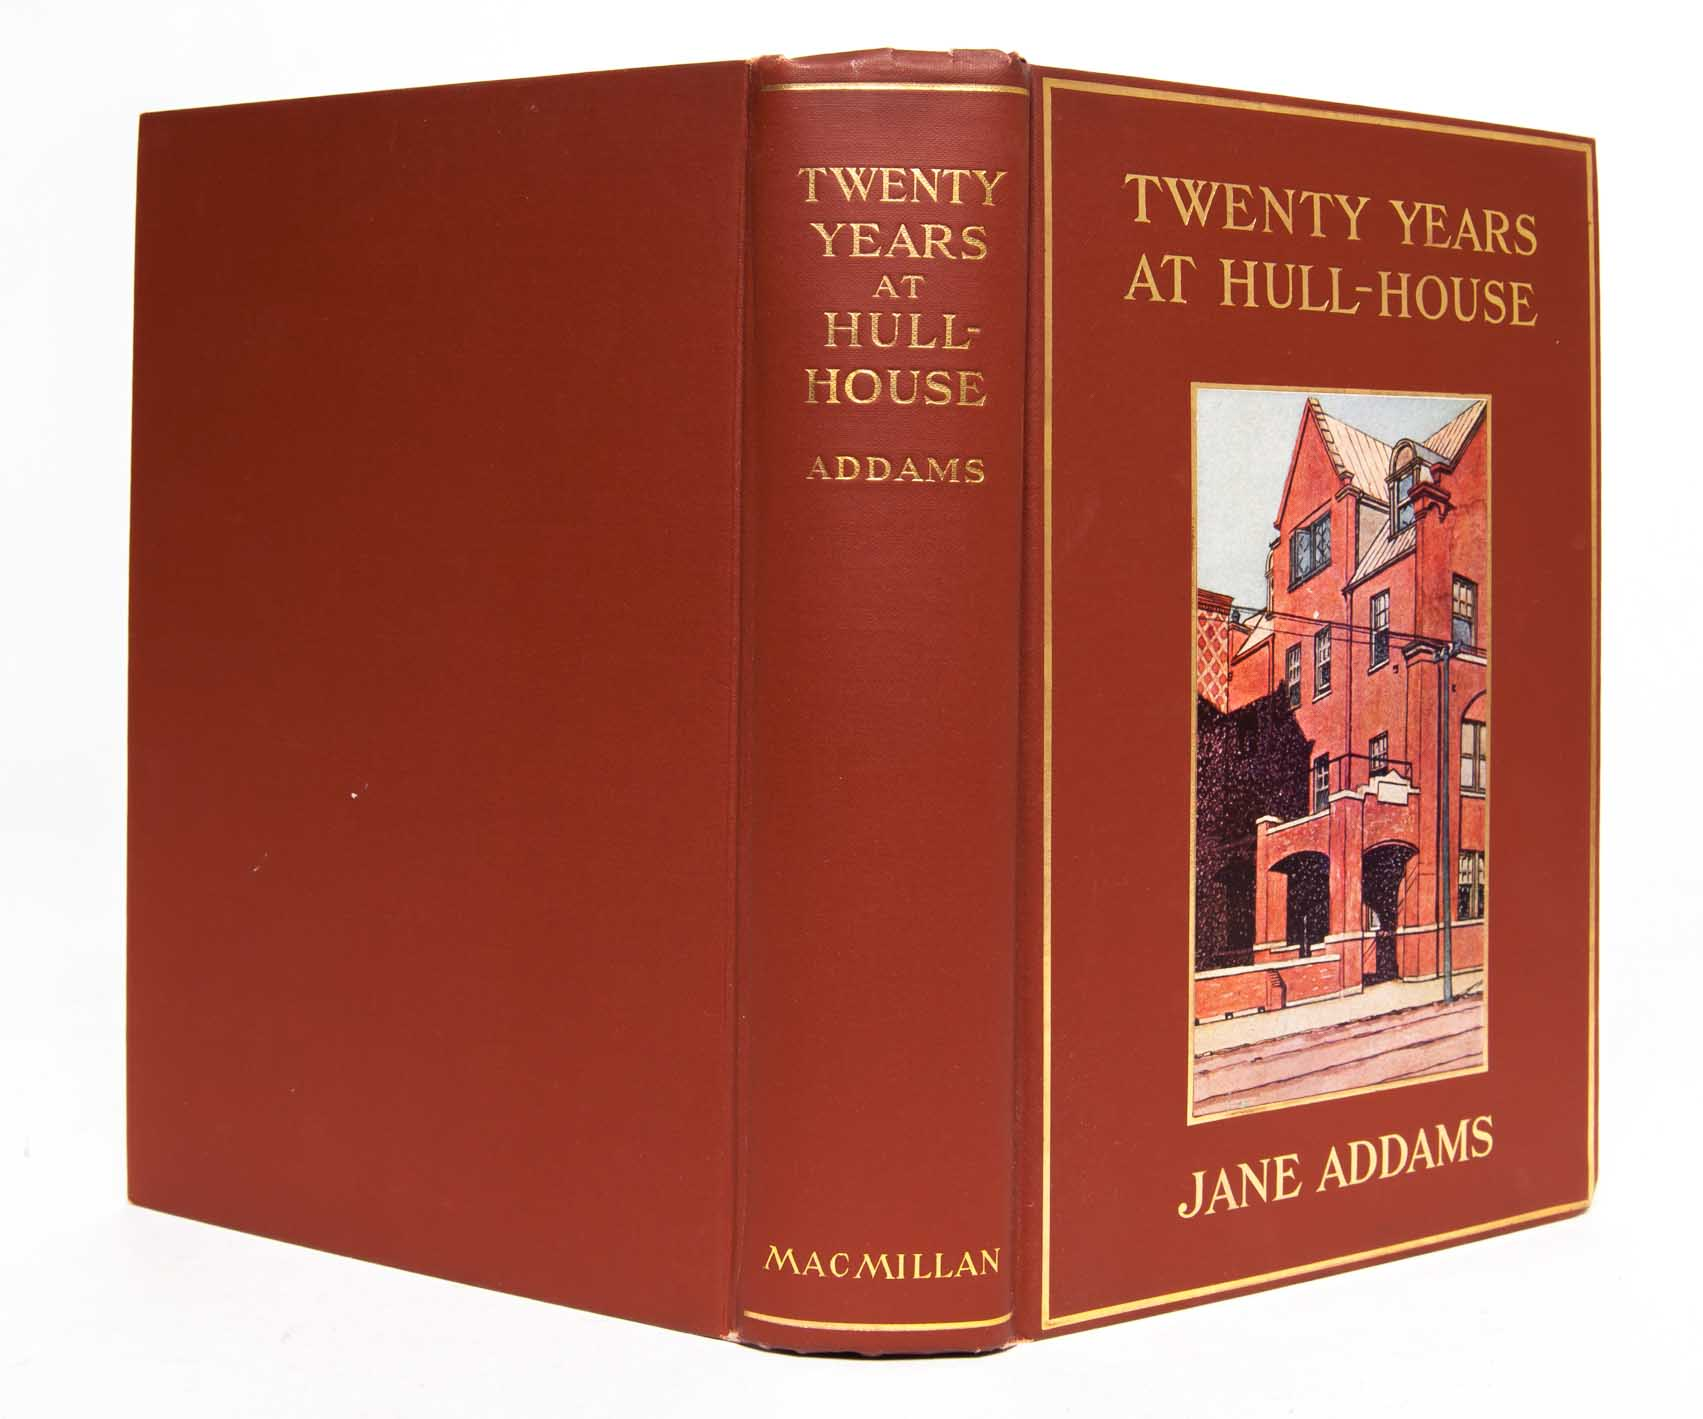 jane addams twenty years at hull The subjective necessity for social settlements this important piece exploring the motives of settlement house workers by jane addams was first published in 1892 and later appeared as chapter six of twenty years at hull house (1910) contents : preface the subjective necessity for social settlements how to cite this piece.